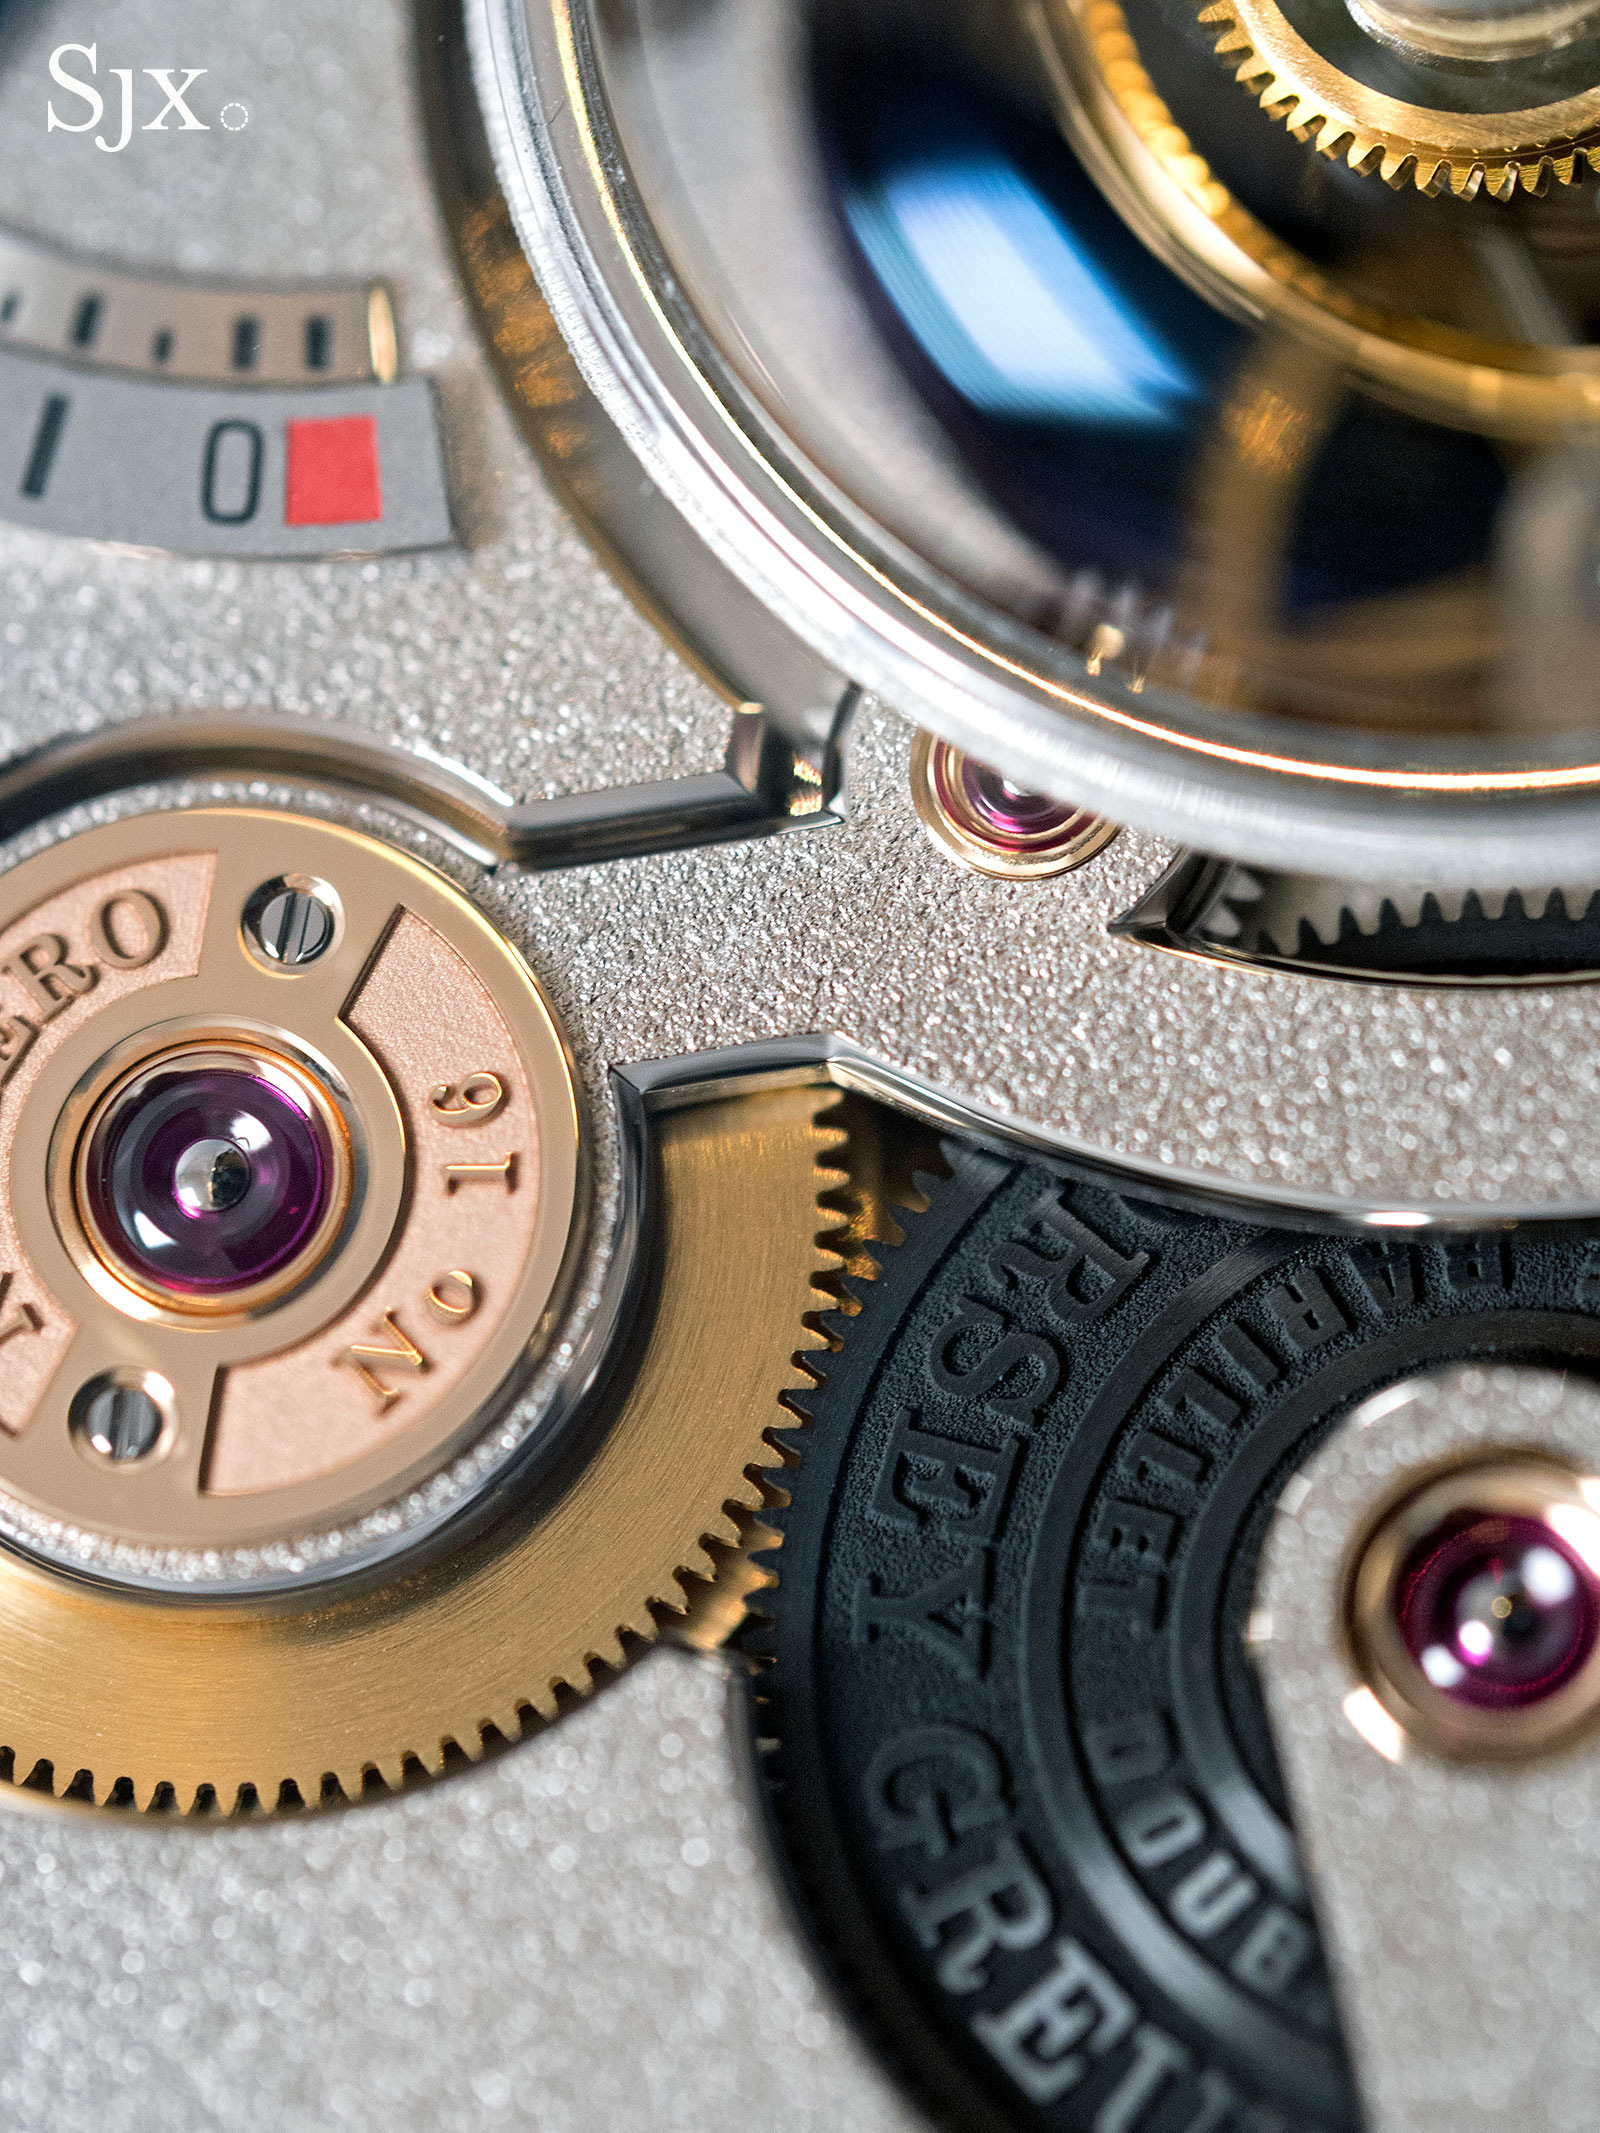 Greubel Forsey Tourbillon 24 Secondes Vision platinum 6